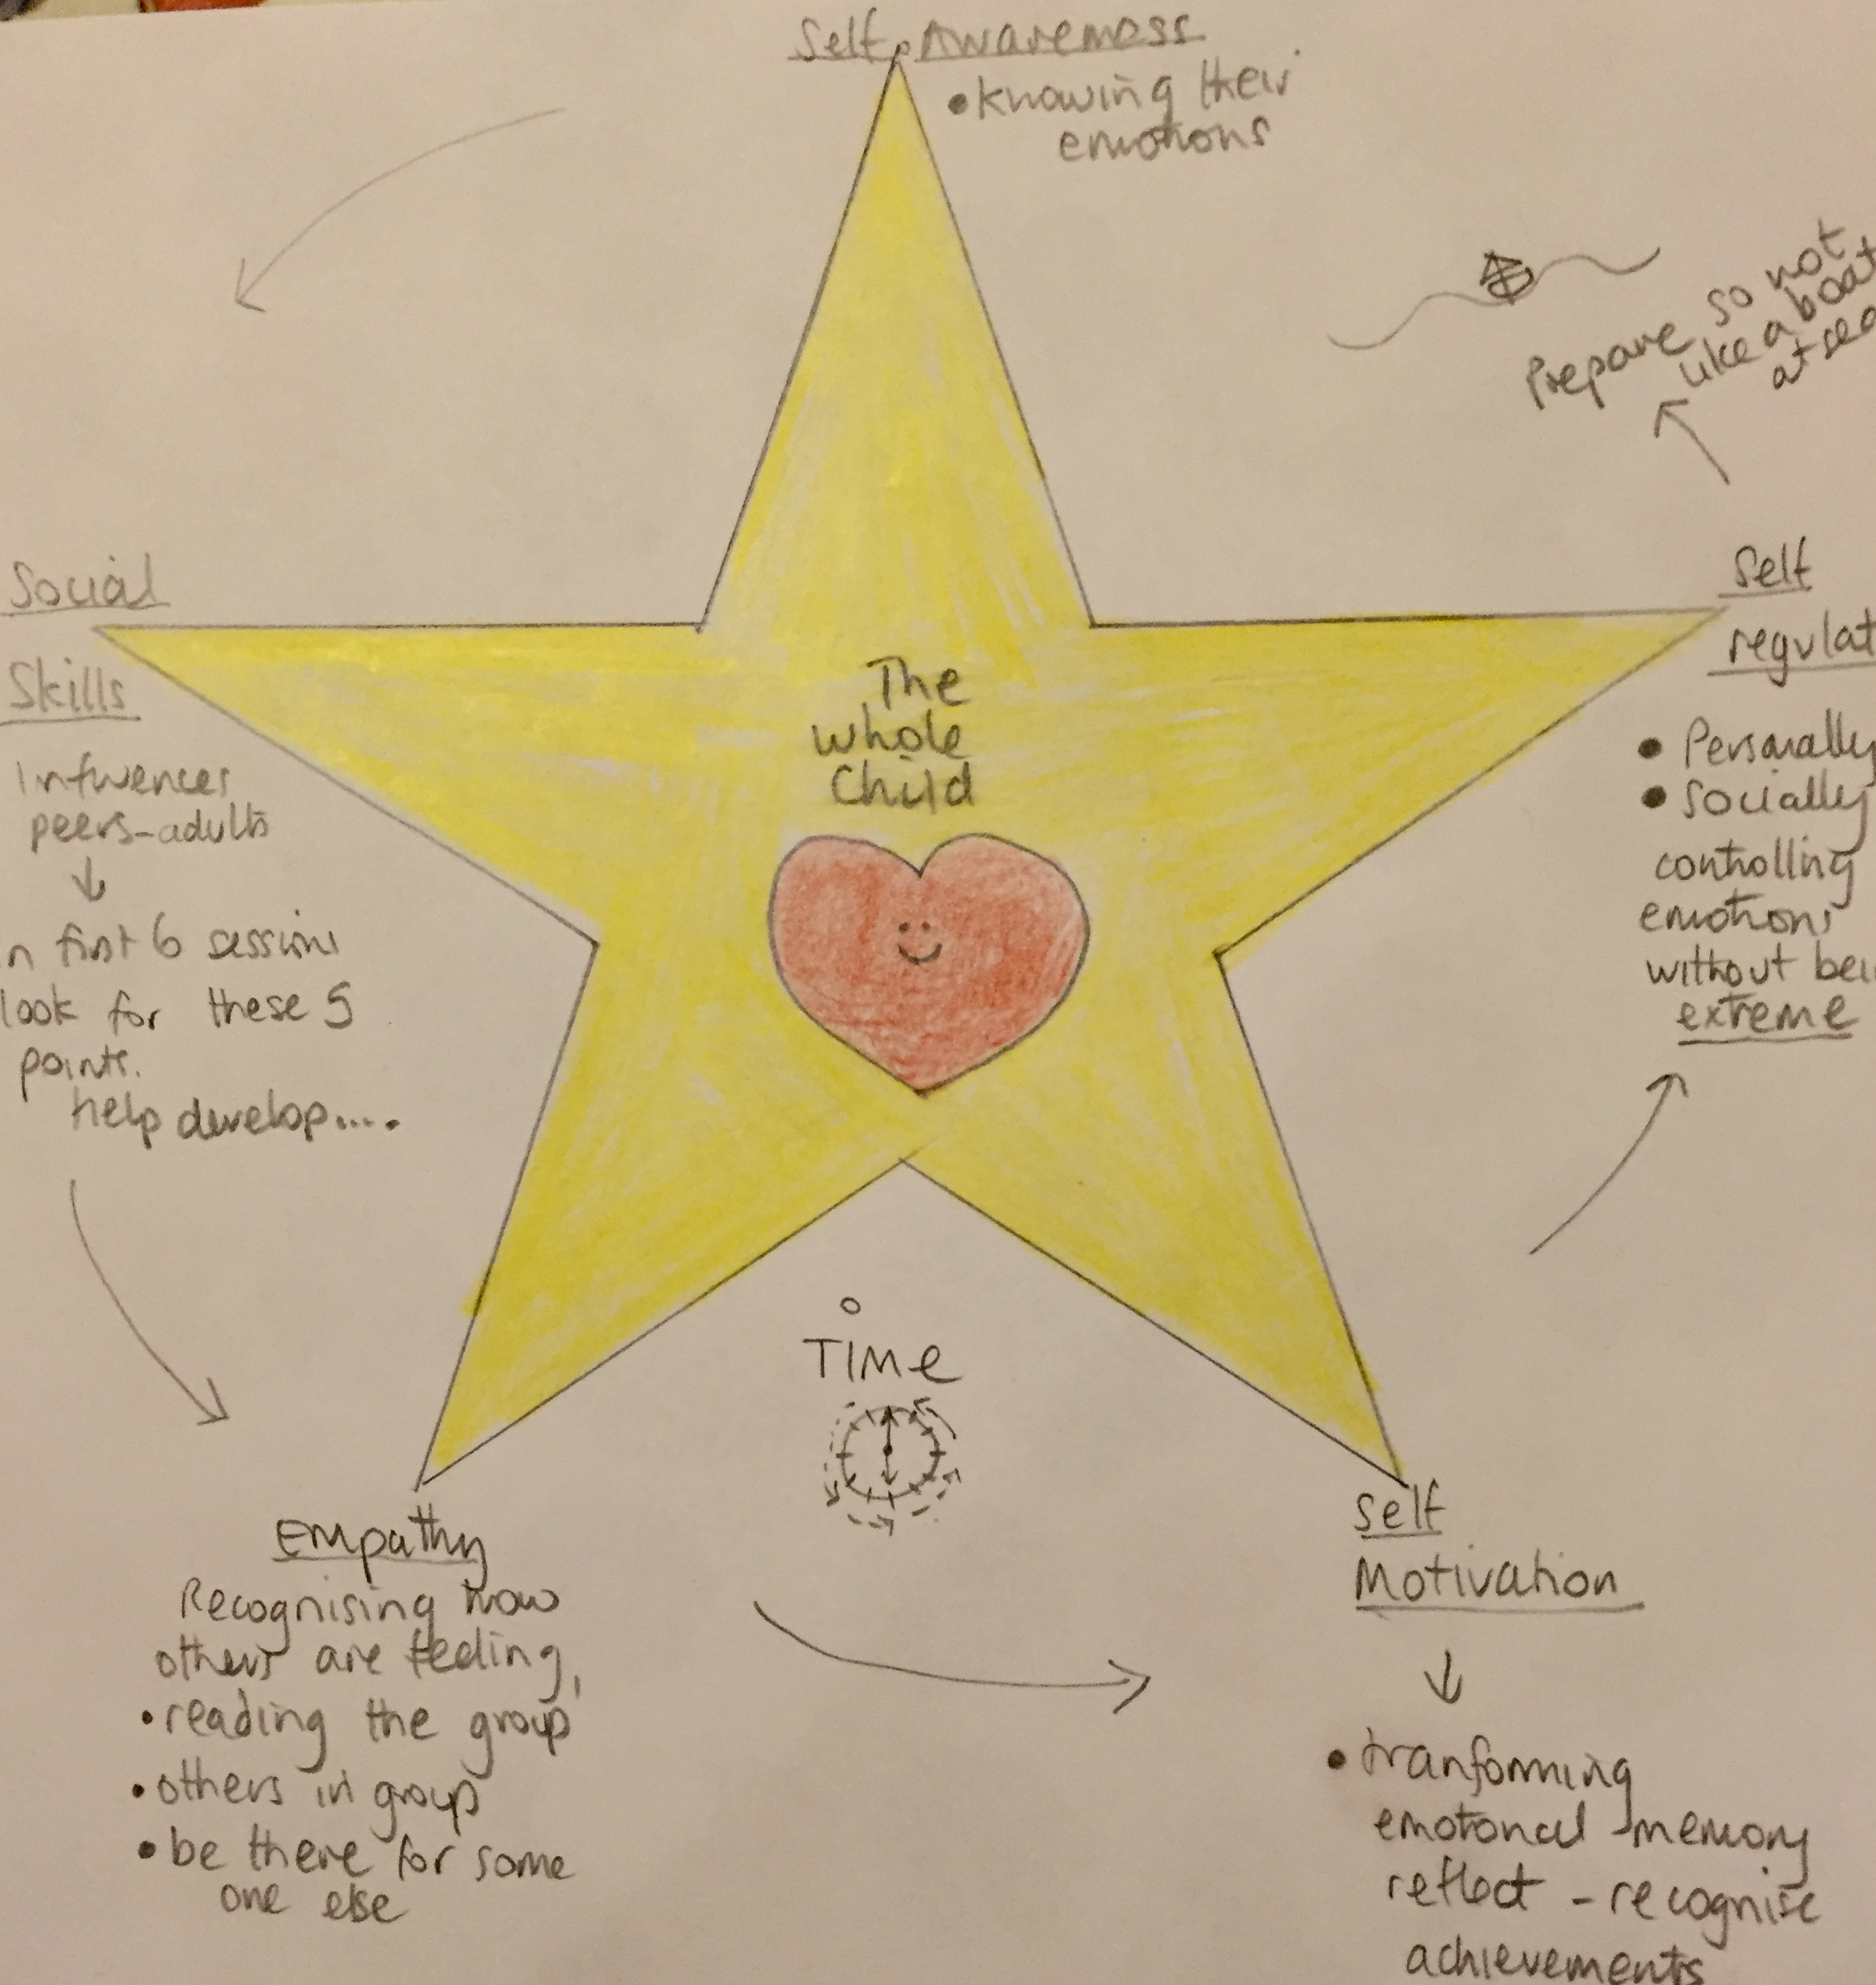 Forest School star - emotional intelligence